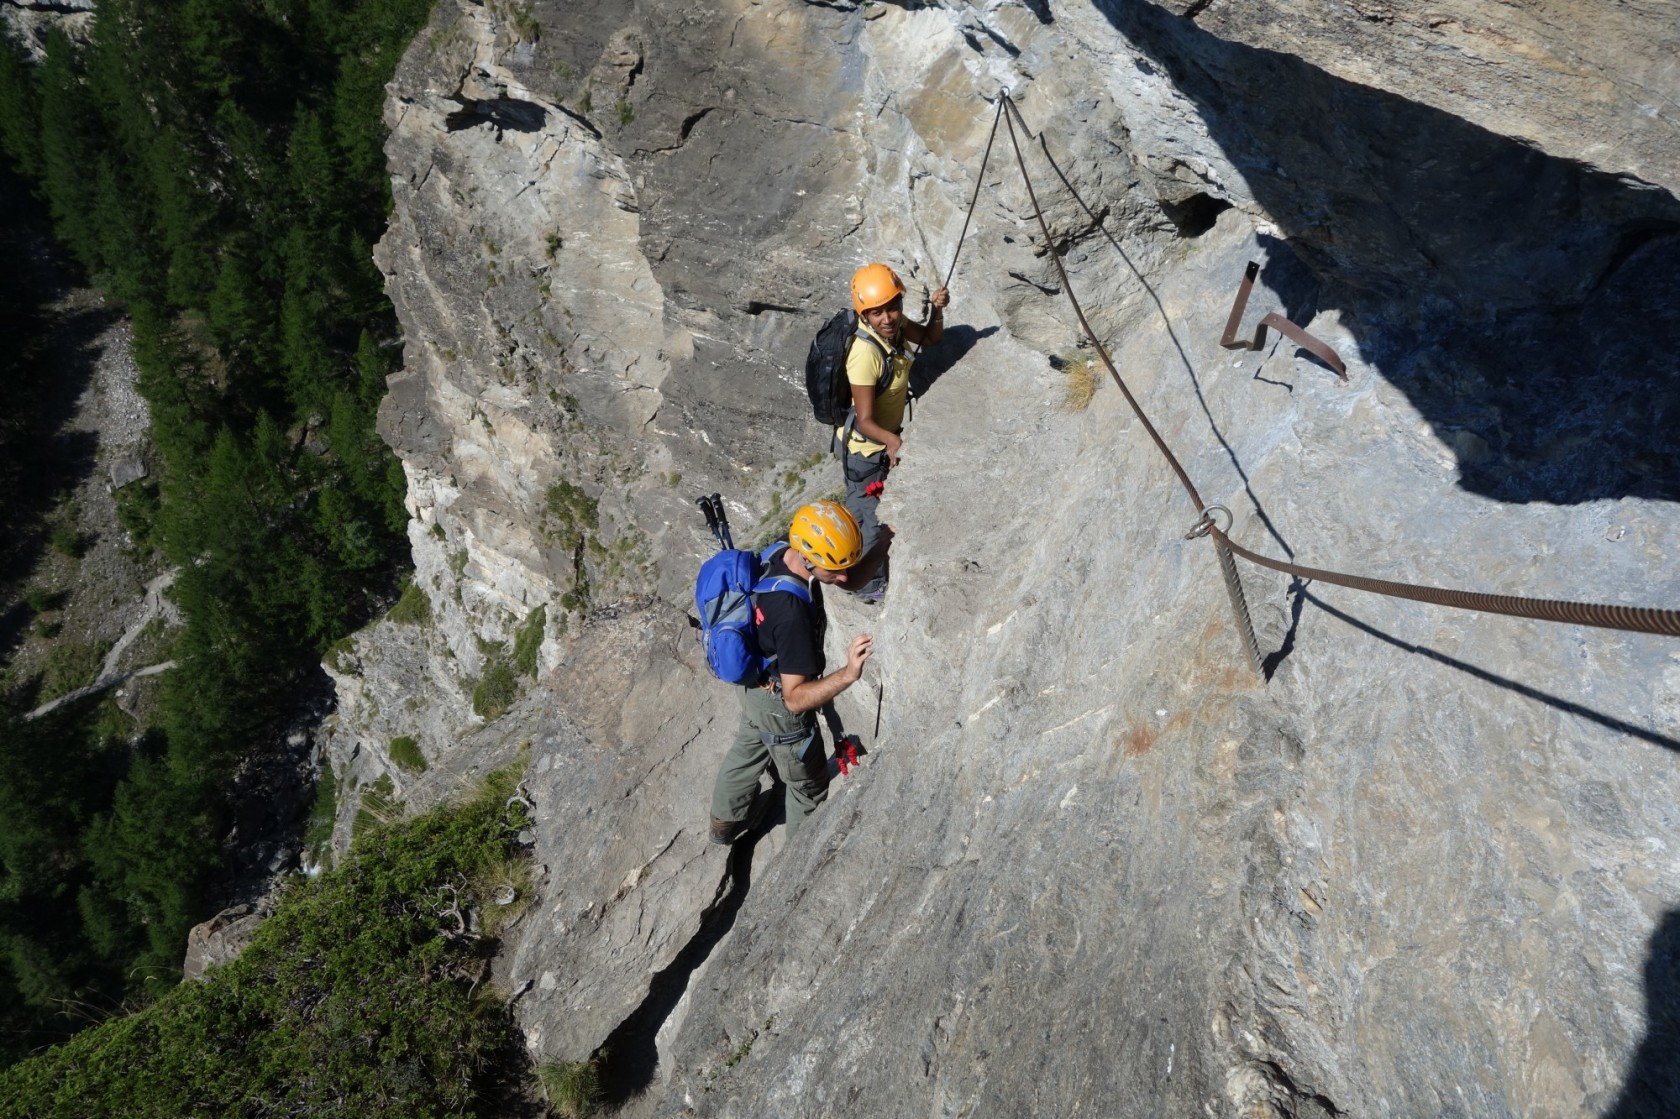 Doing the Via Ferrata in Zermatt